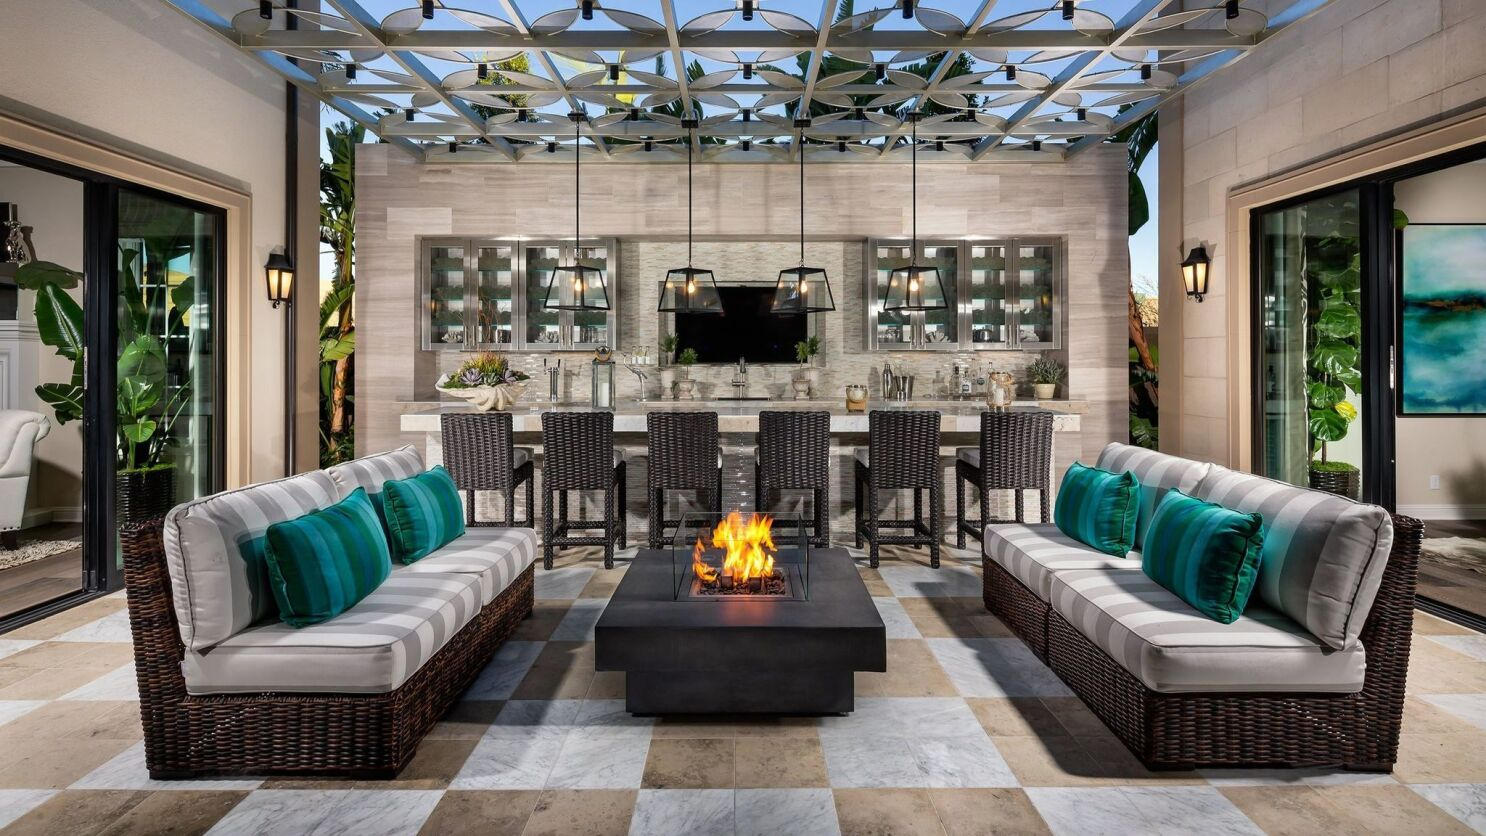 New Ideas For Outdoor Spaces The San Diego Union Tribune